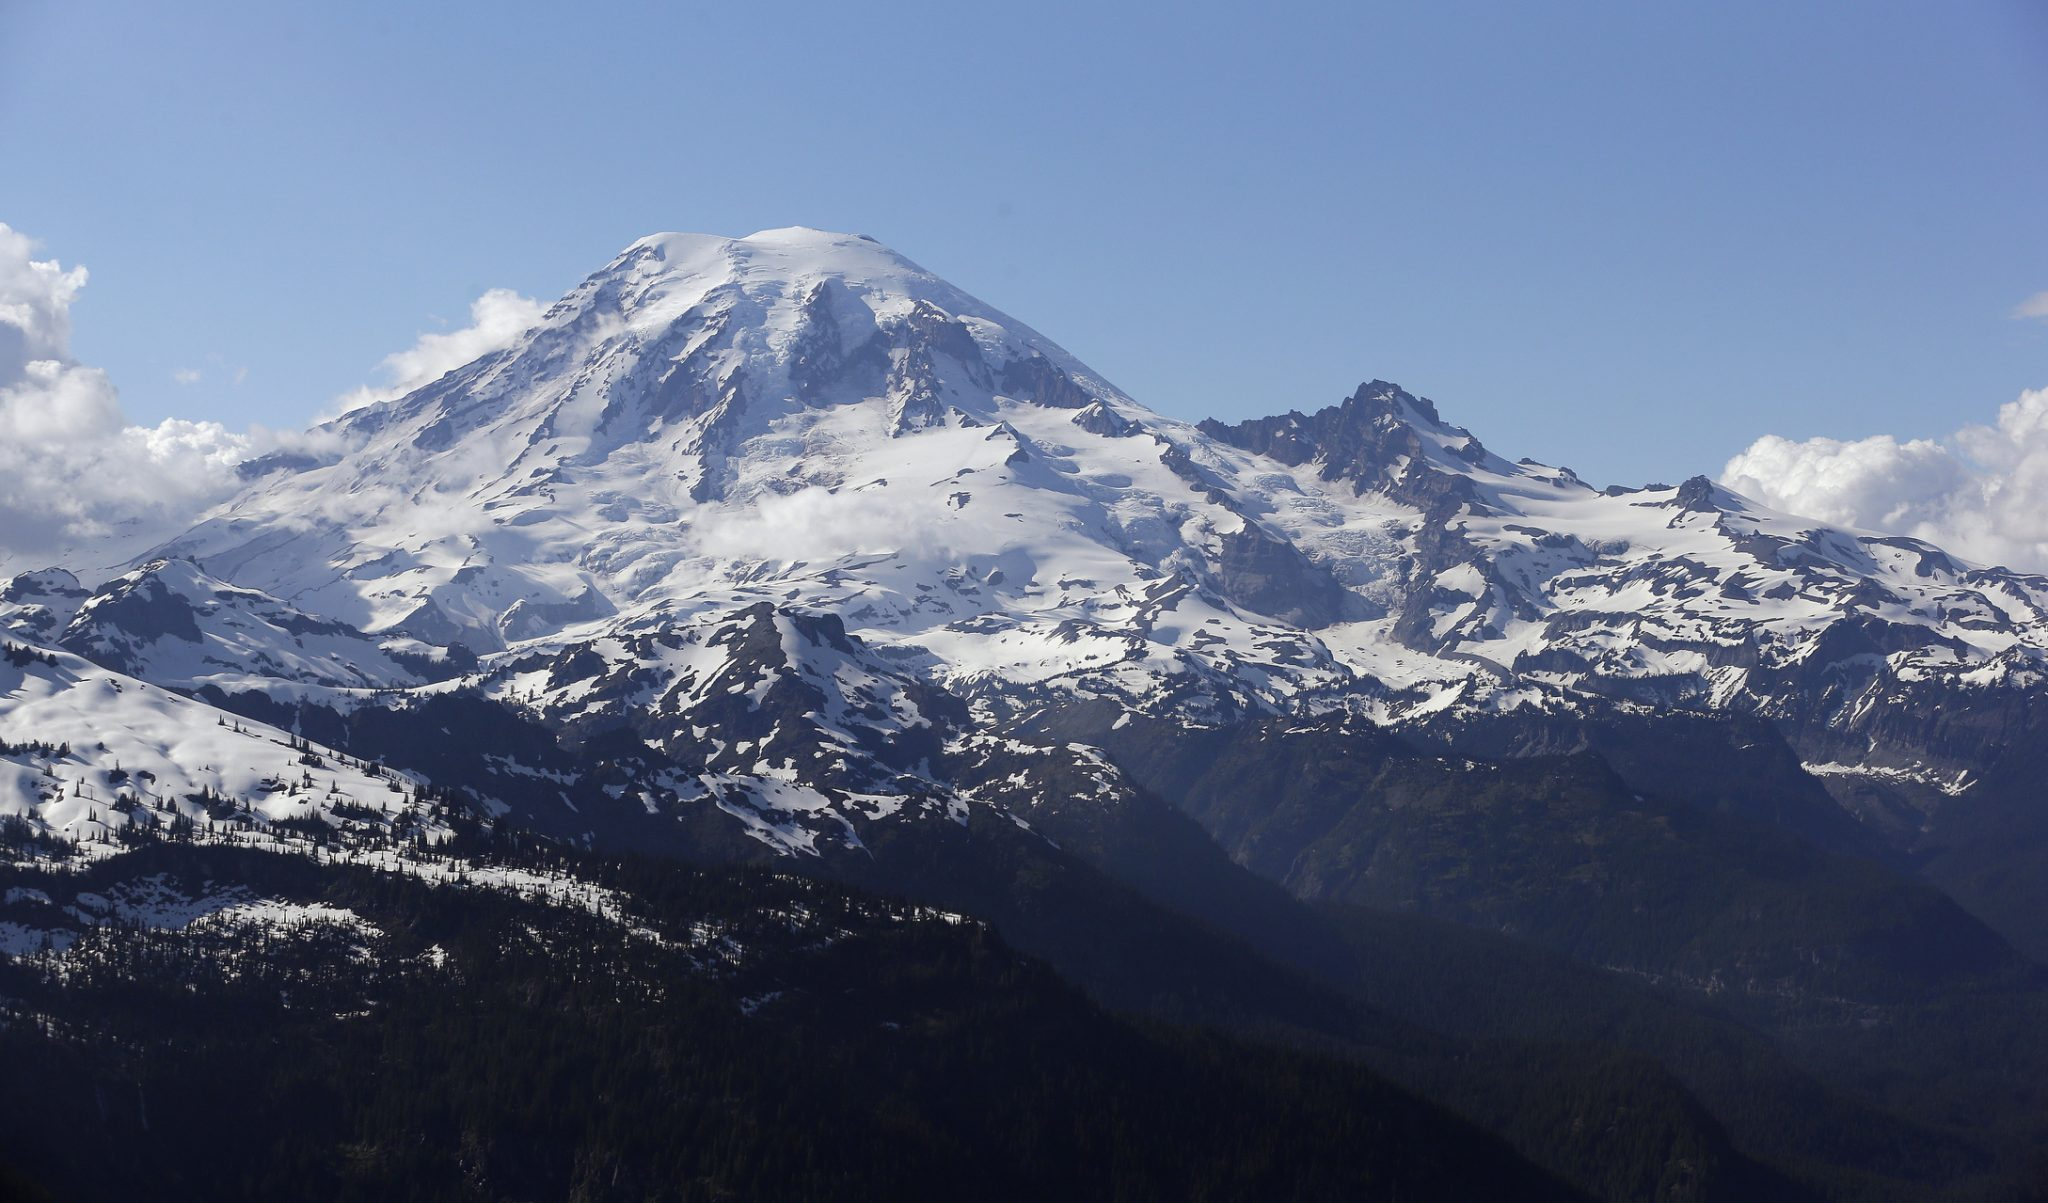 Helicopter rescues climbers from near Mount Rainier summit